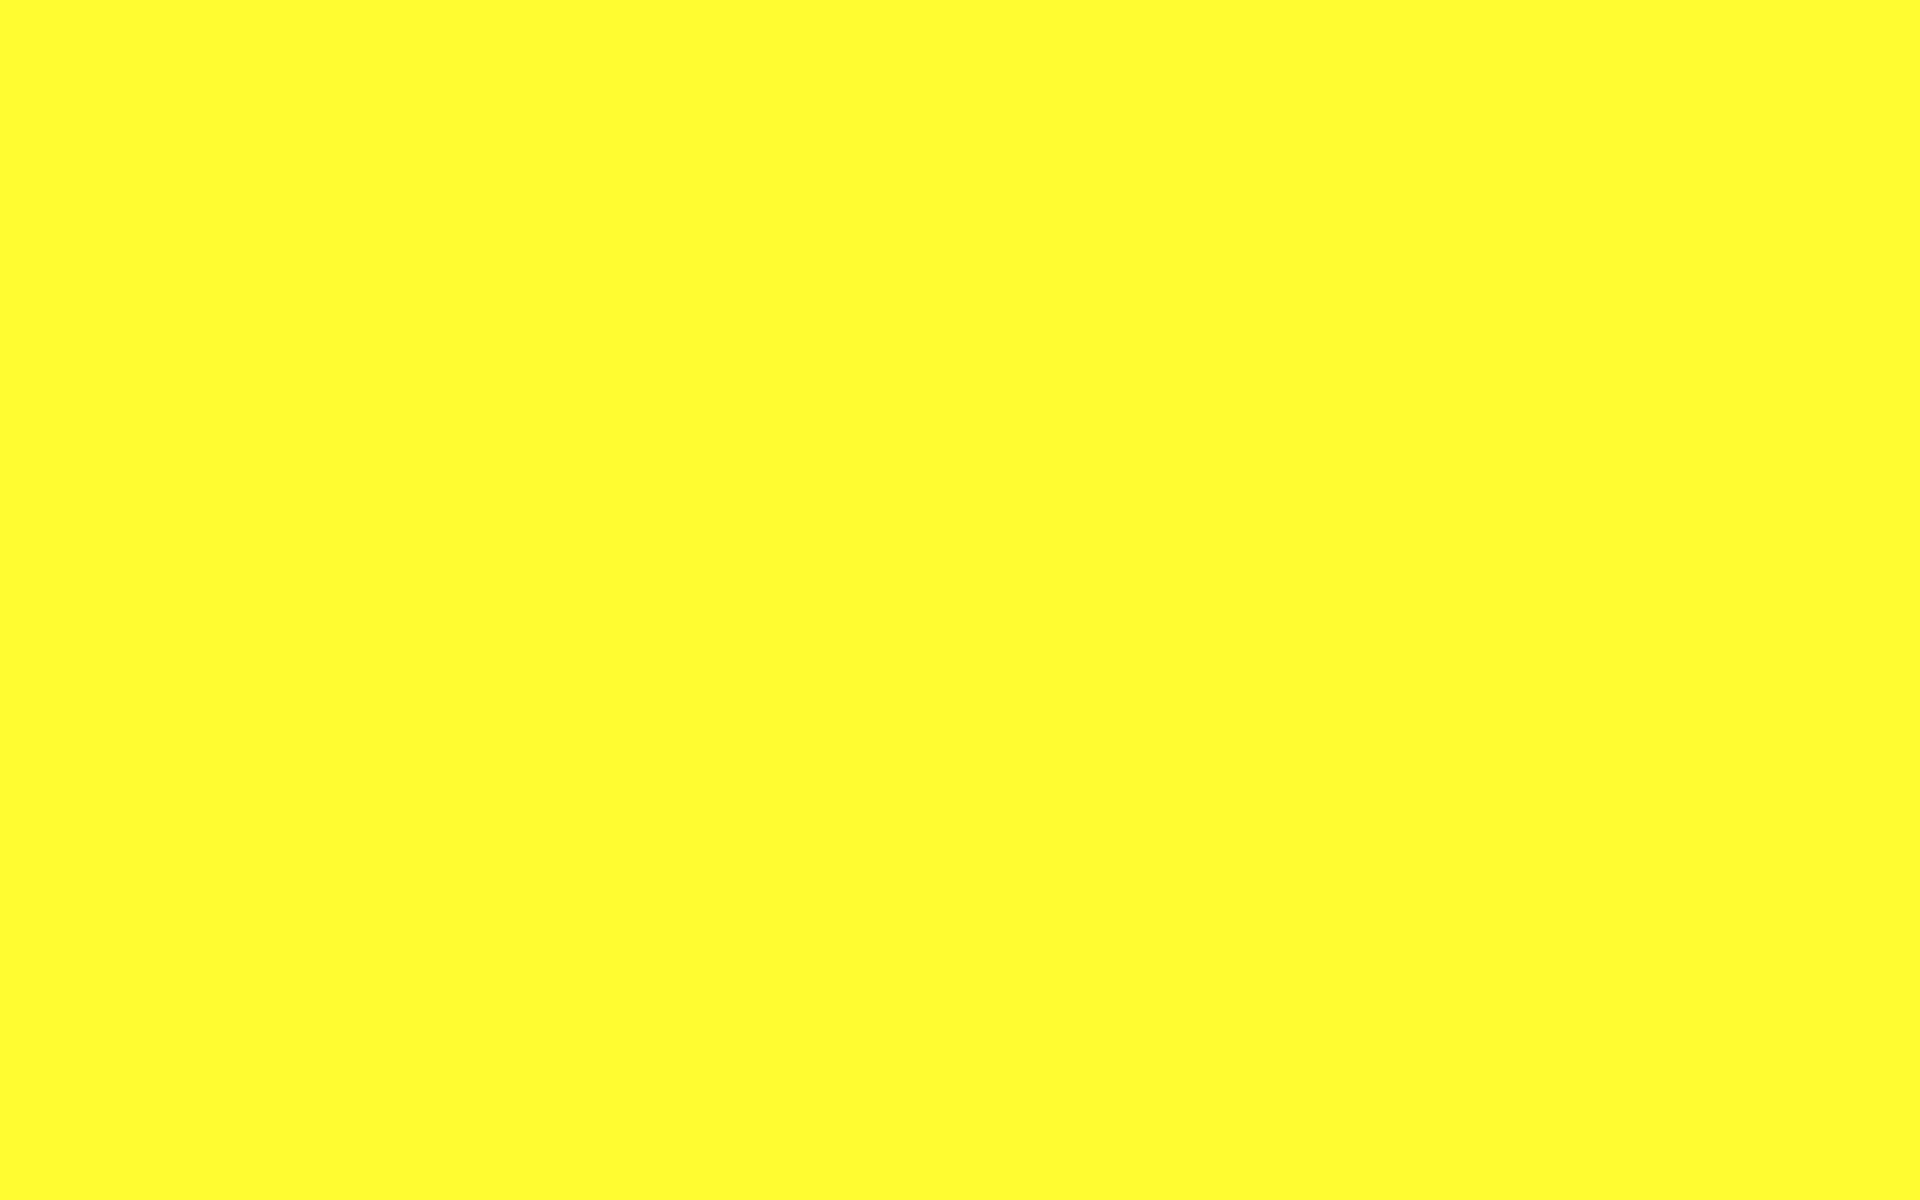 1920x1200 Yellow RYB Solid Color Background